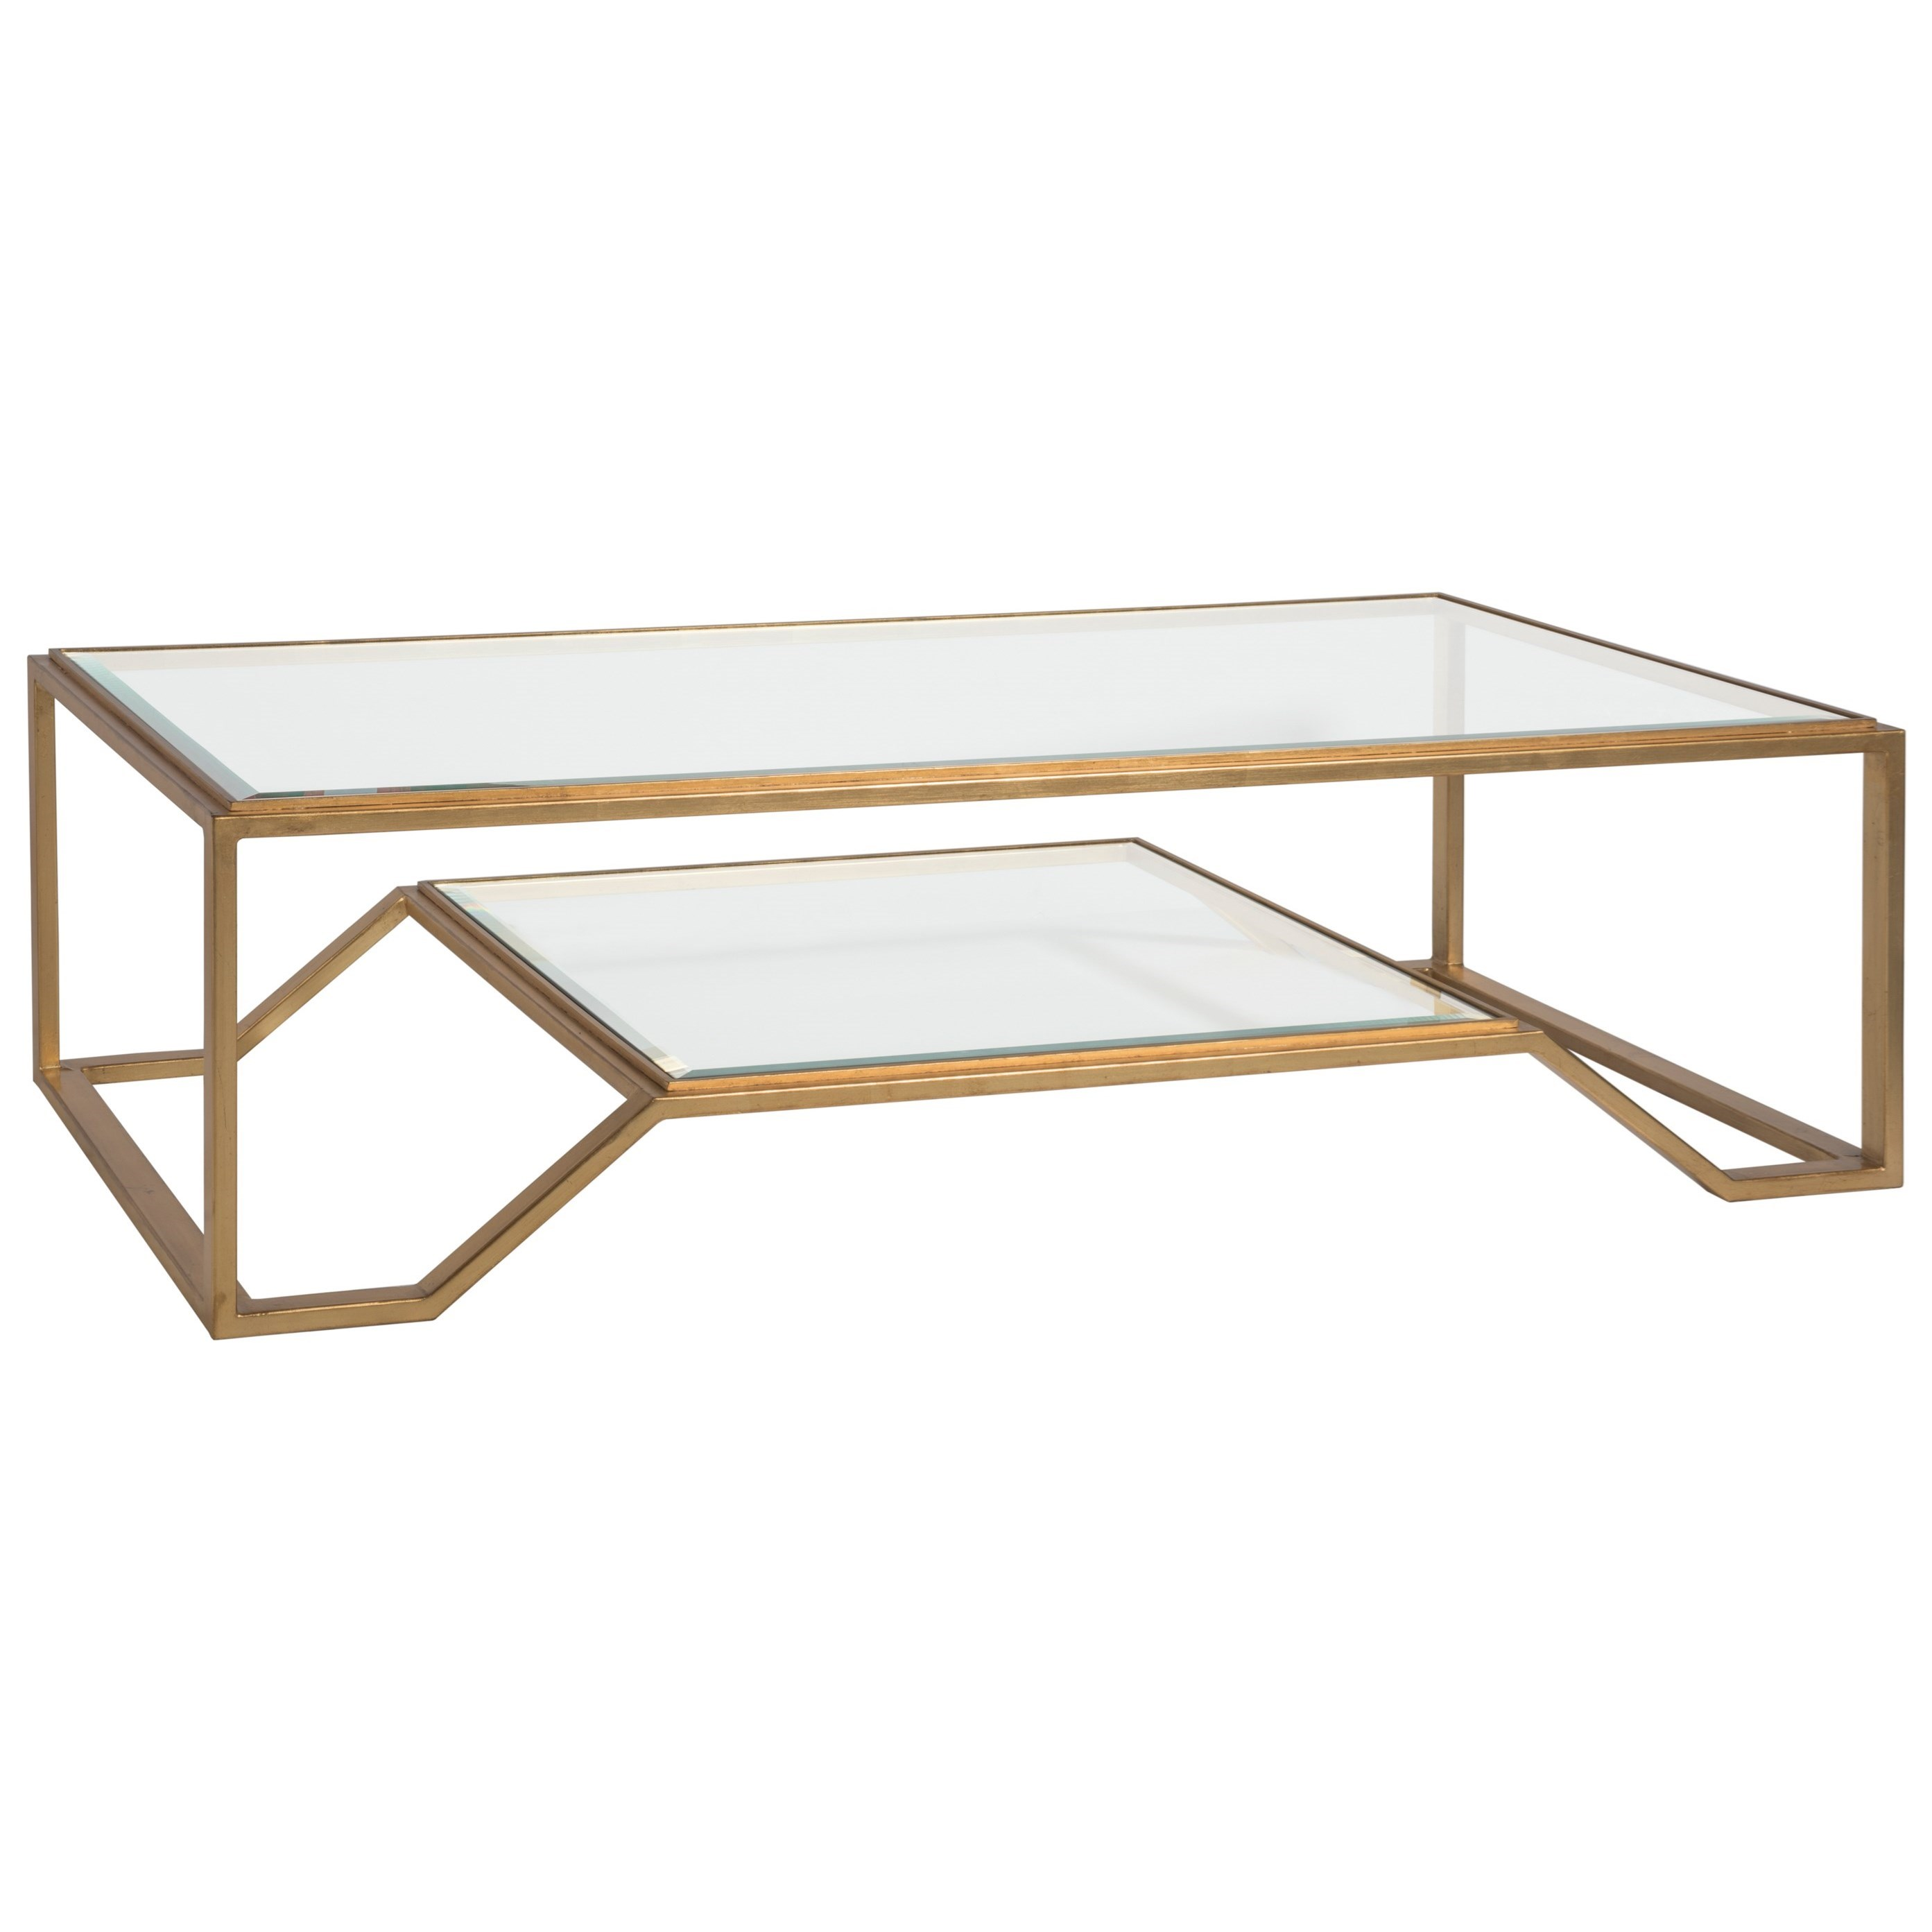 Metal Designs Byron Rectangular Cocktail Table by Artistica at Alison Craig Home Furnishings